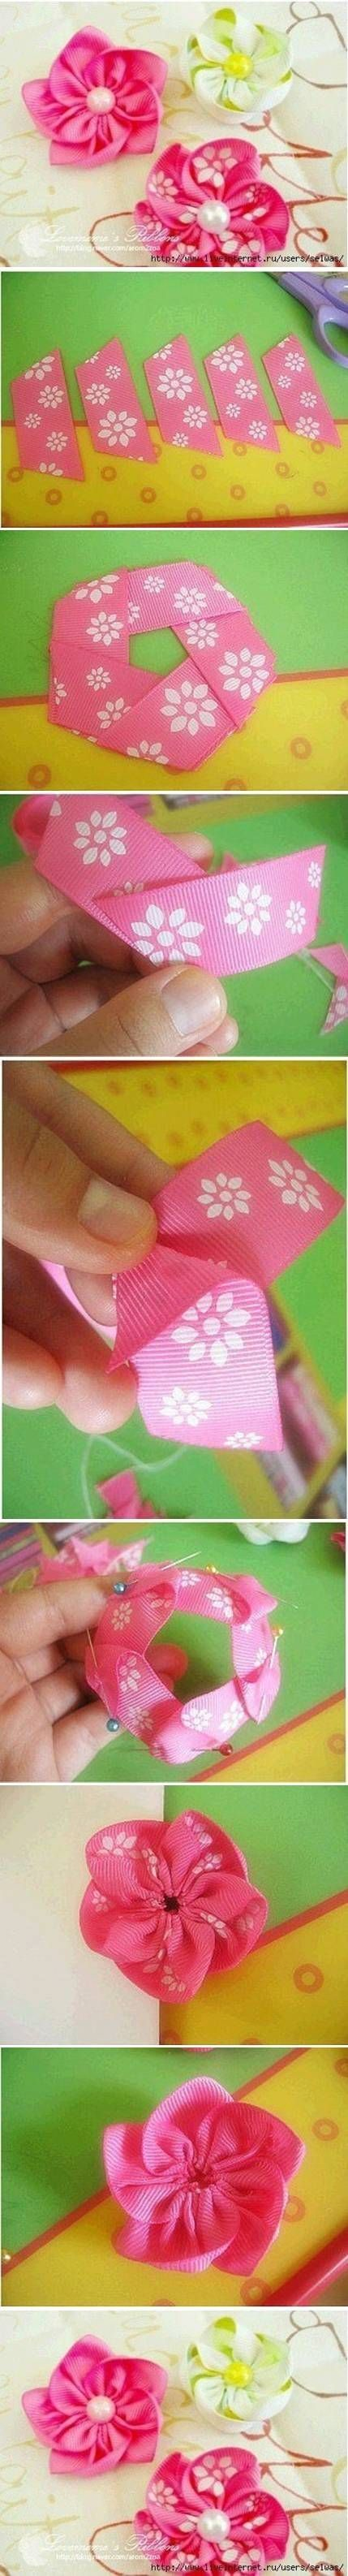 DIY Ribbon Flowers by maria.t.rogers